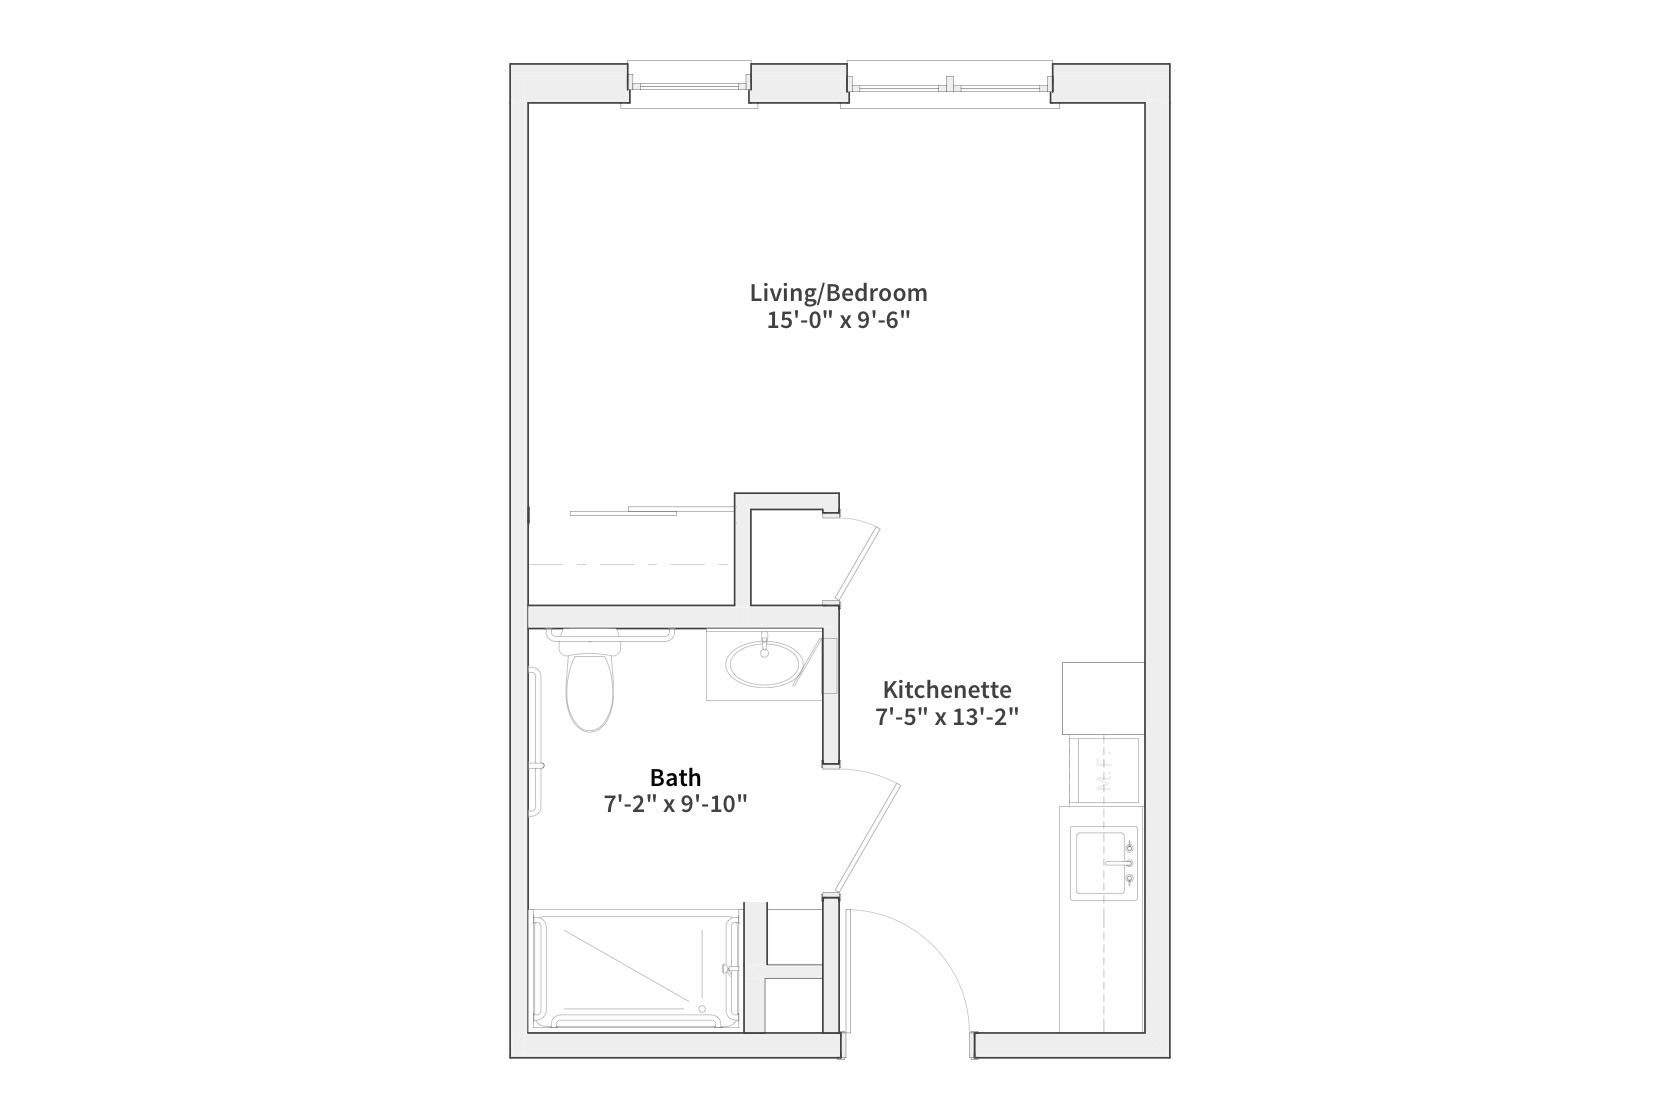 Indiana  Plan Room And Board